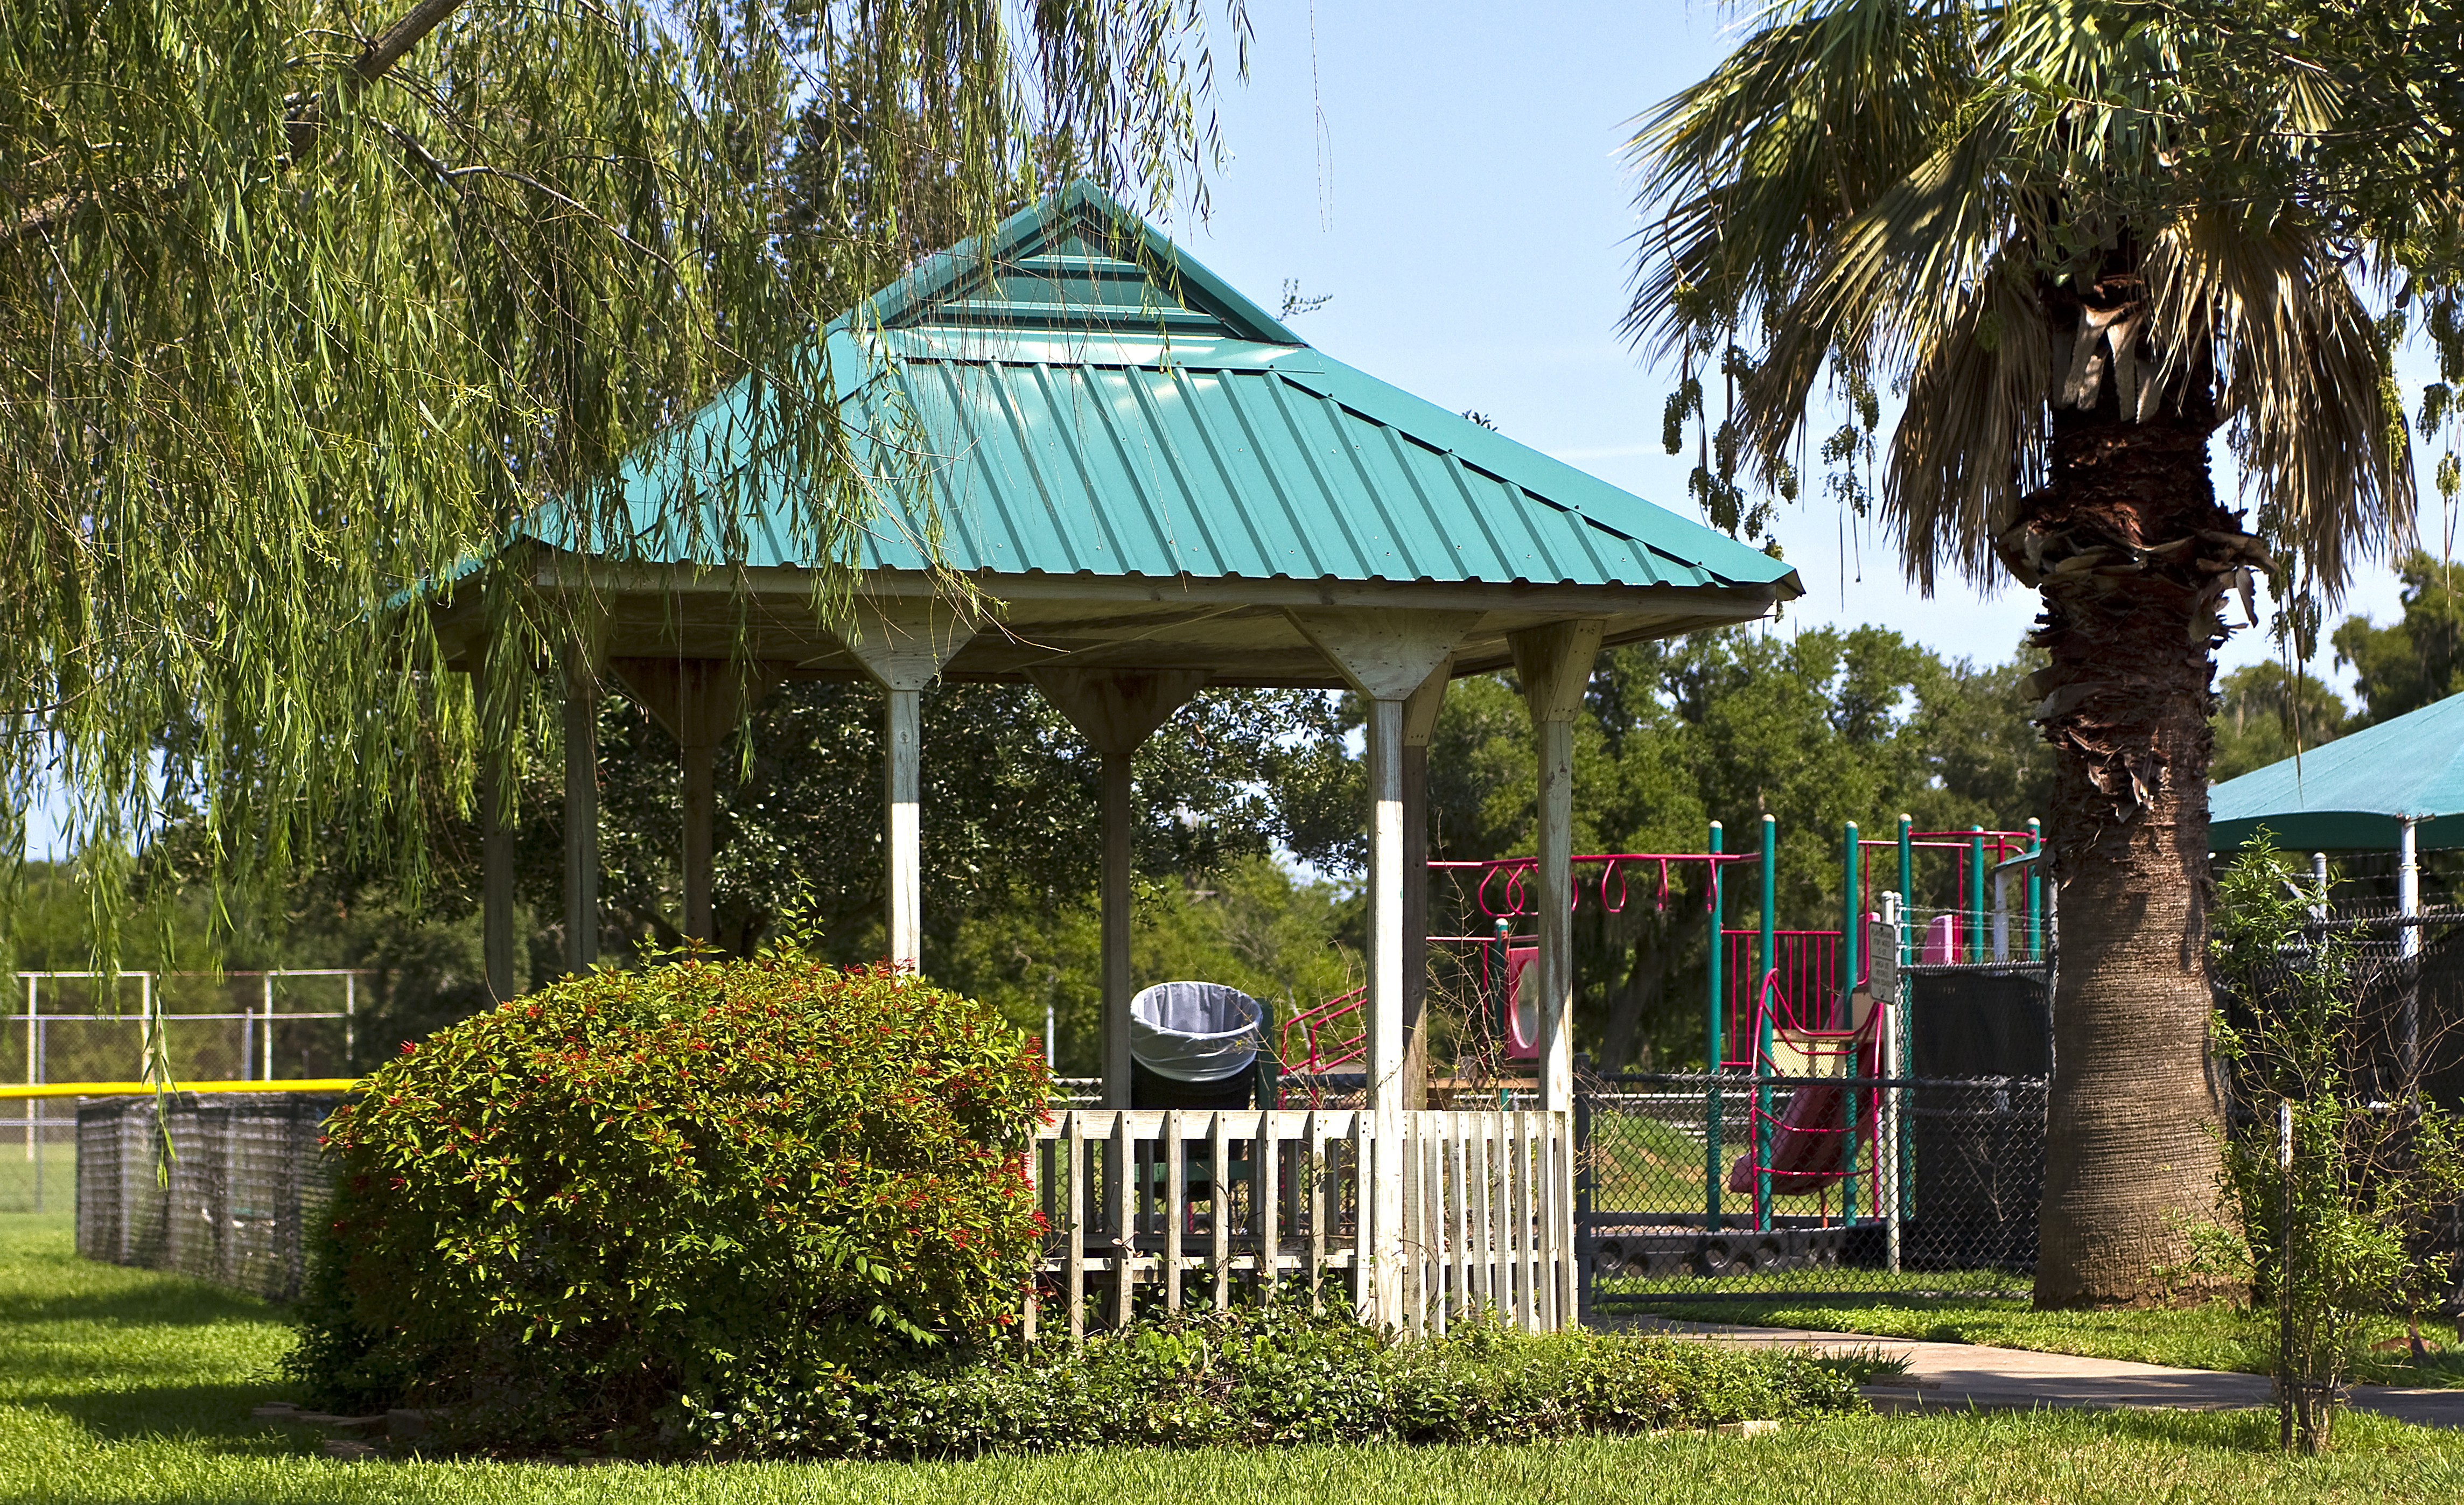 Outdoor Pool Gazebo and Playground